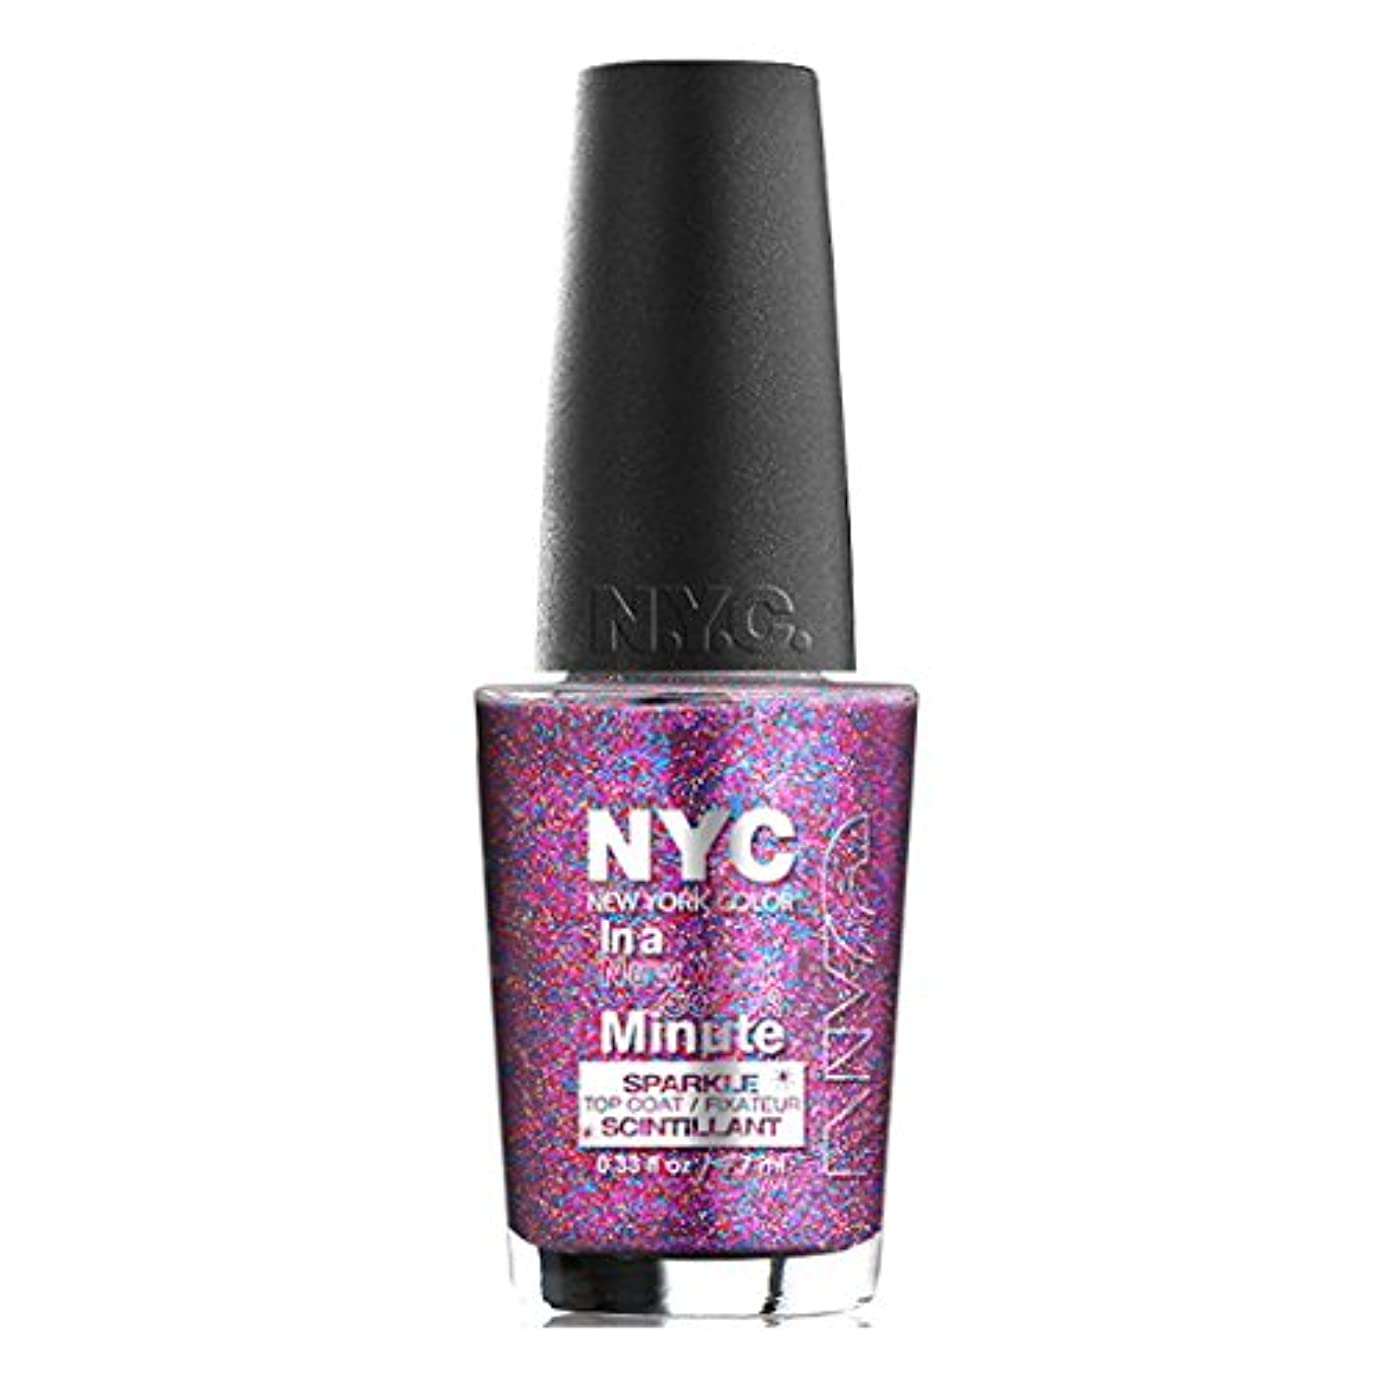 シャツ変化ダブル(6 Pack) NYC In A New York Color Minute Sparkle Top Coat - Big City Dazzle (並行輸入品)